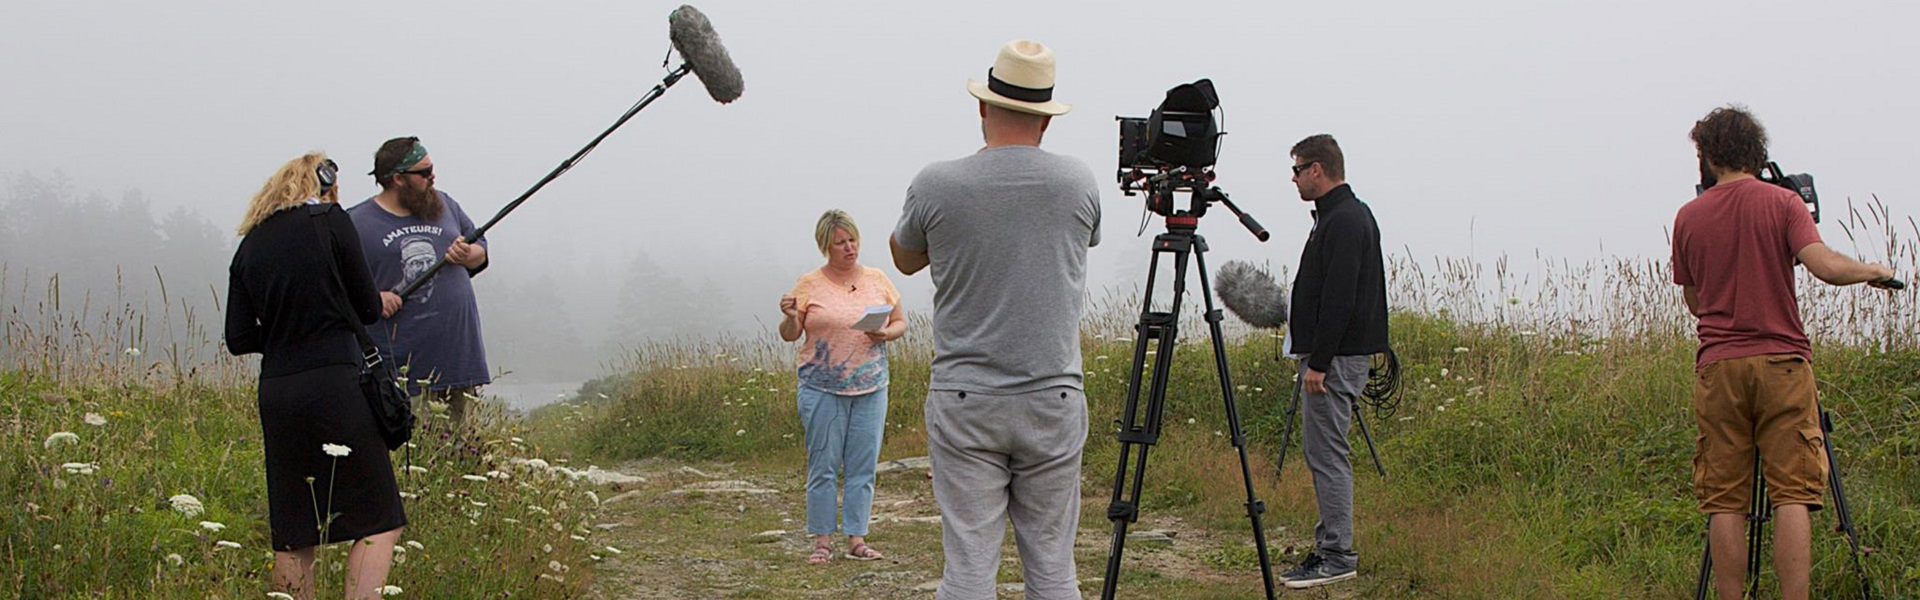 A film crew stands around a woman who is speaking; they are in a field of grass surrounded by fog.